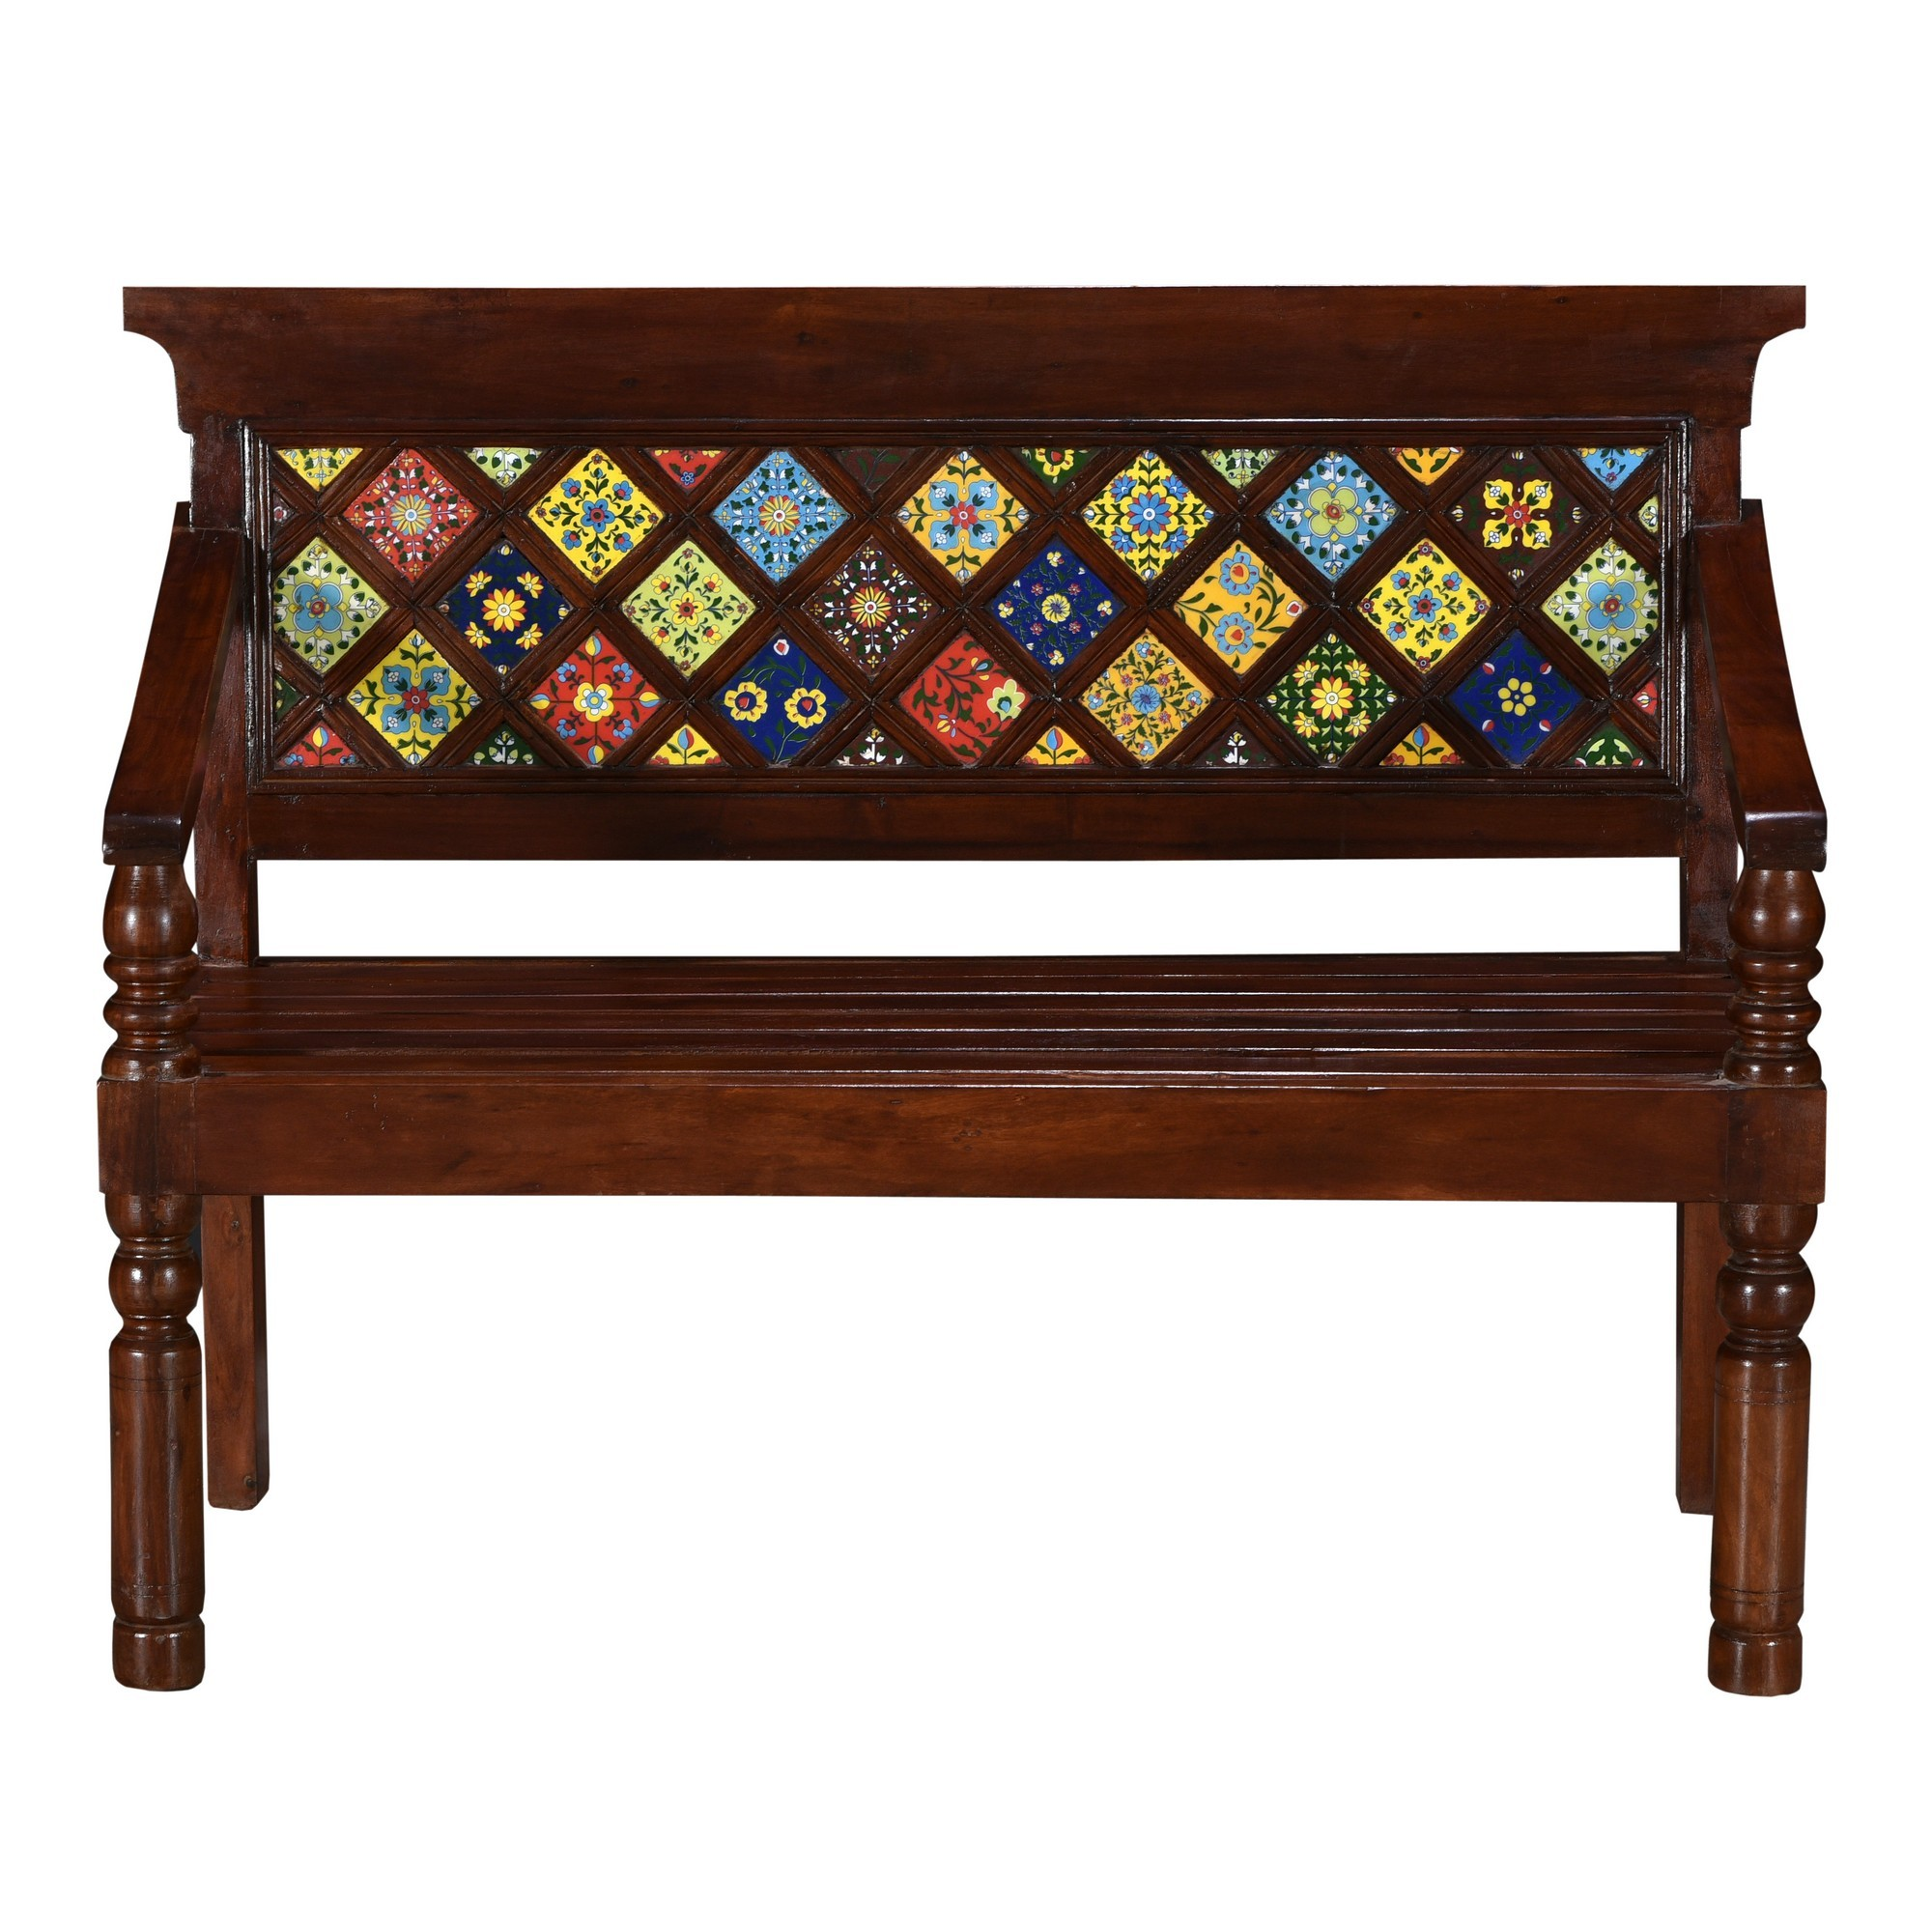 Safina Moroccan Tile Inlay Timber Bench